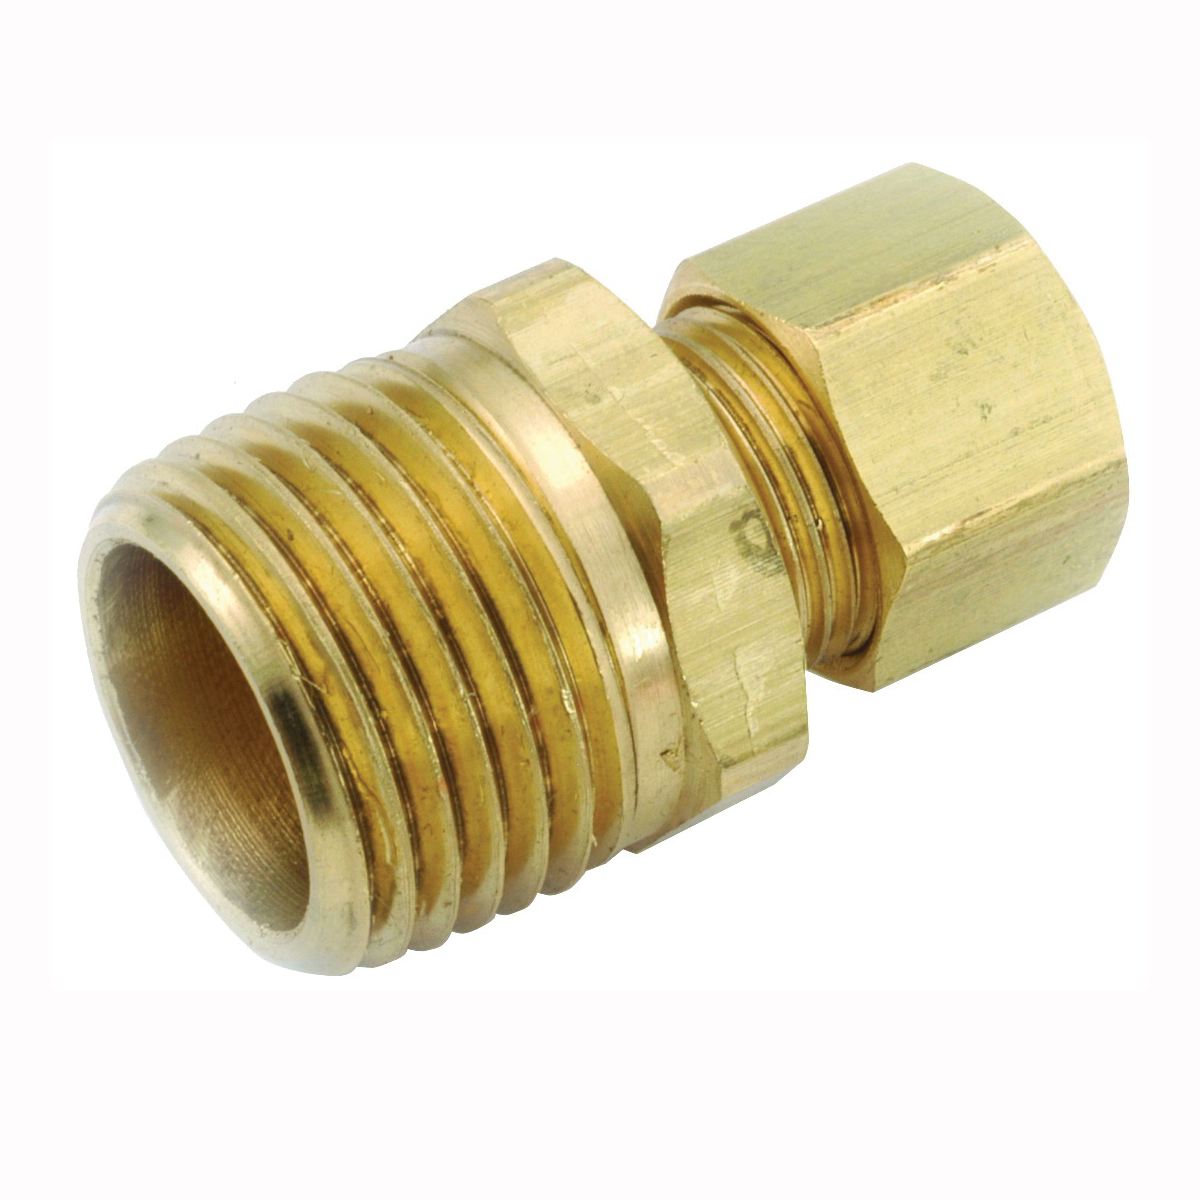 Picture of Anderson Metals 750068-1008 Connector, 5/8 in Compression, 1/2 in Male